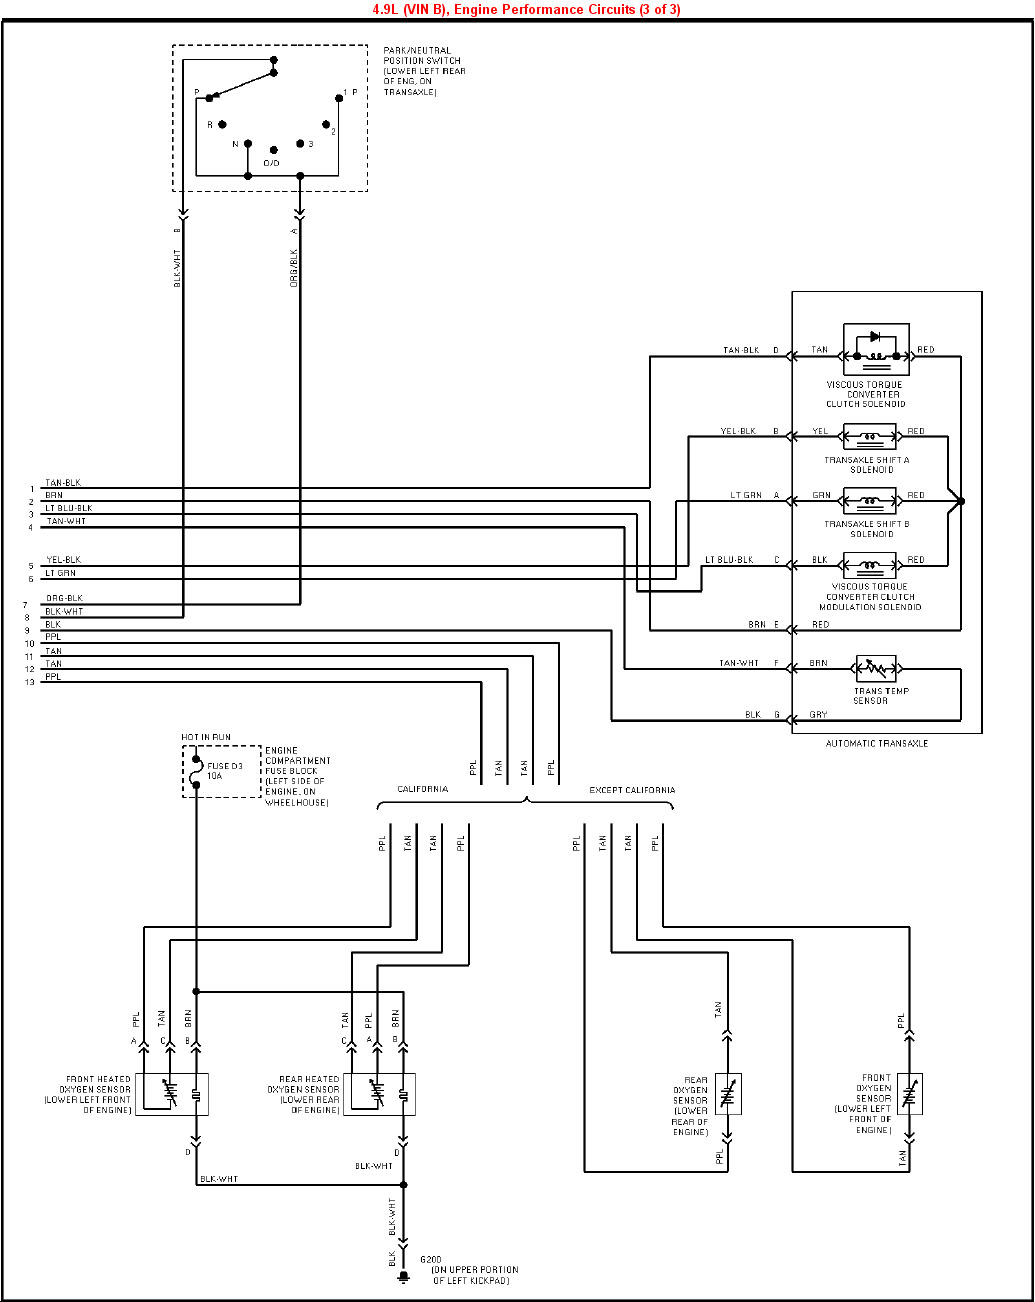 1995 Cadillac Deville 4.9L VIN B PCM (3 of 3) index of gearhead efi wiring 92 cadillac deville fuse box diagram at reclaimingppi.co